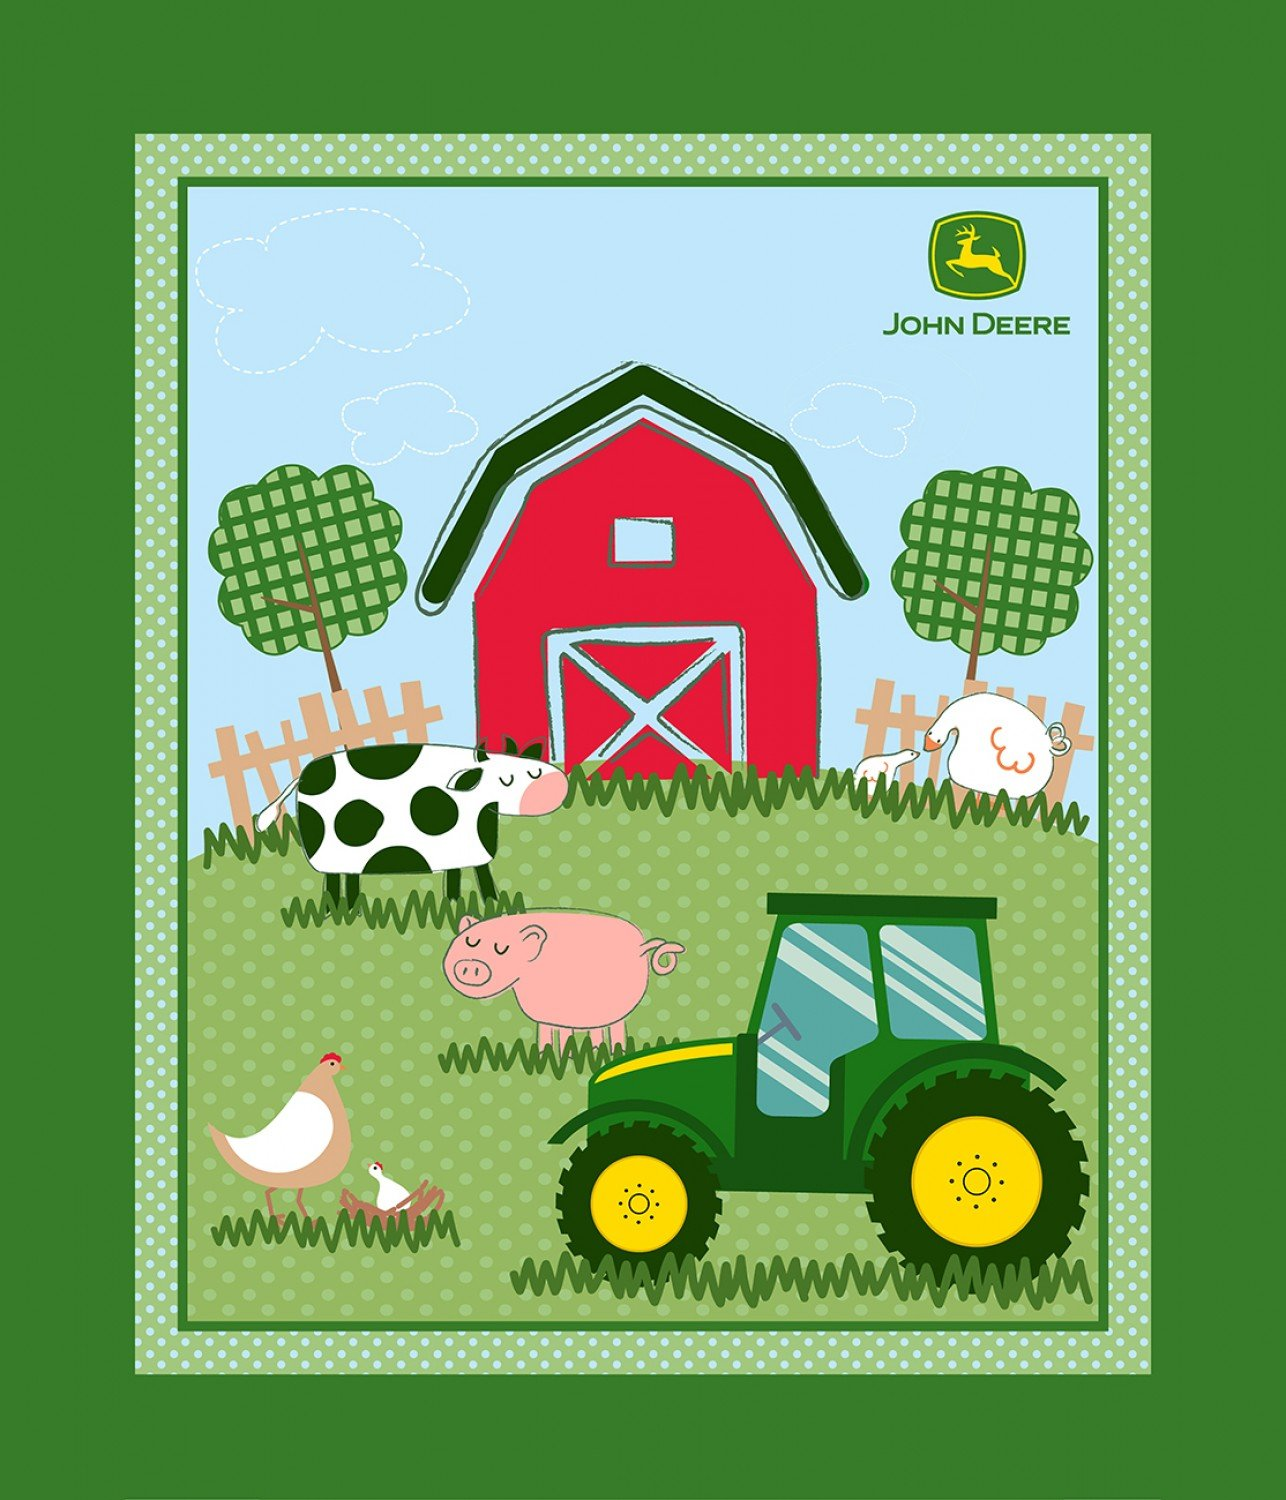 John Deere Barn Yard Panel by Springs Creative 70171-6470715